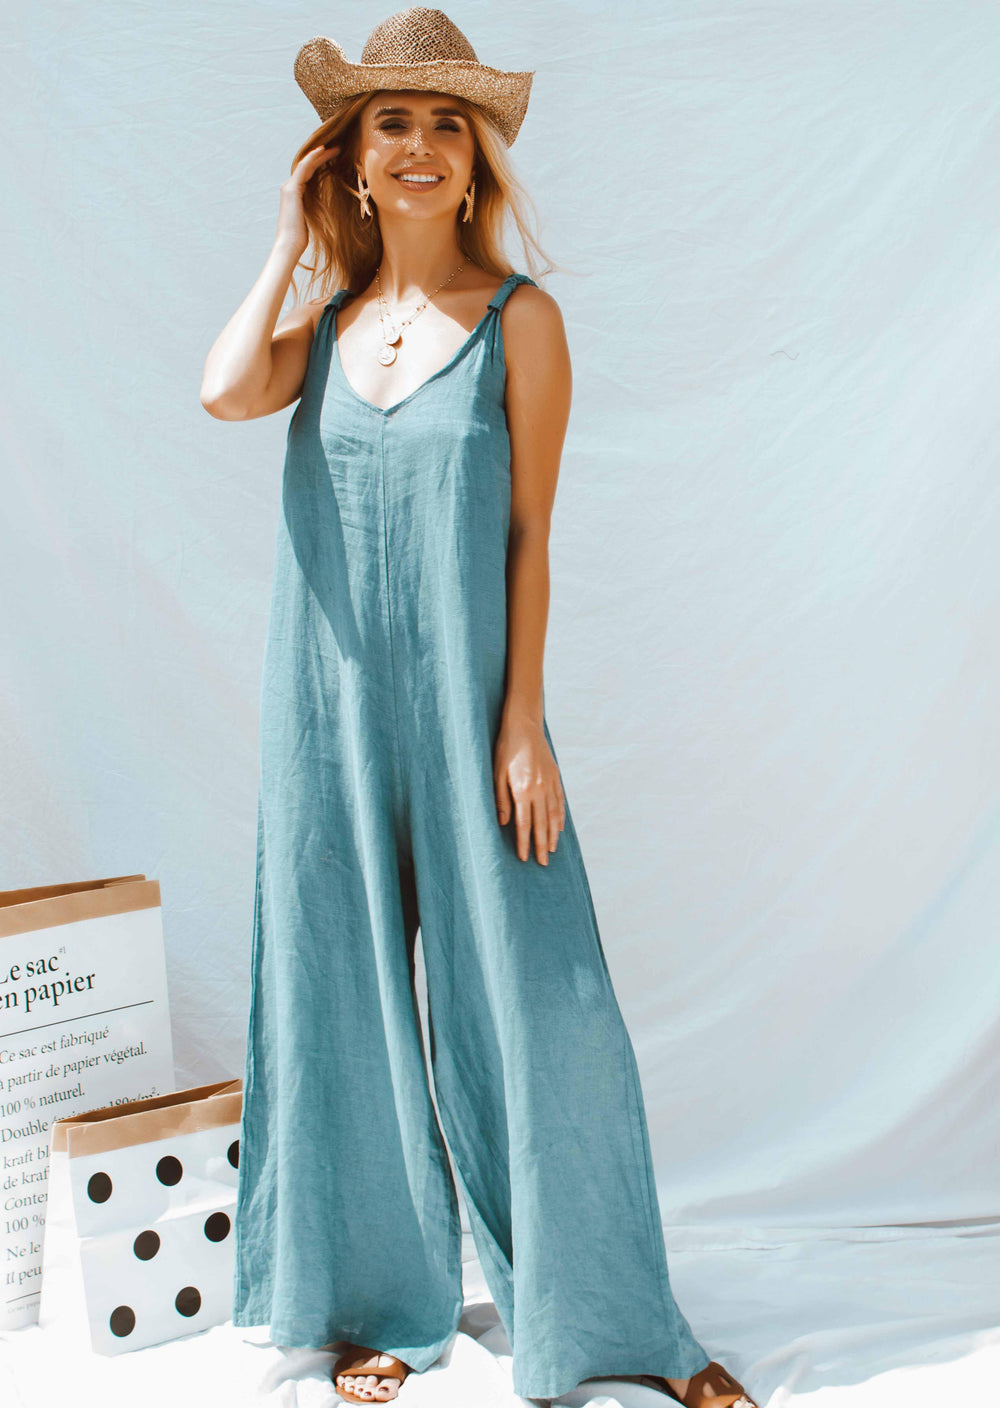 APOLLO JUMPSUIT IN BLUE | Women's Online Shopping | CHICLEFRIQUE